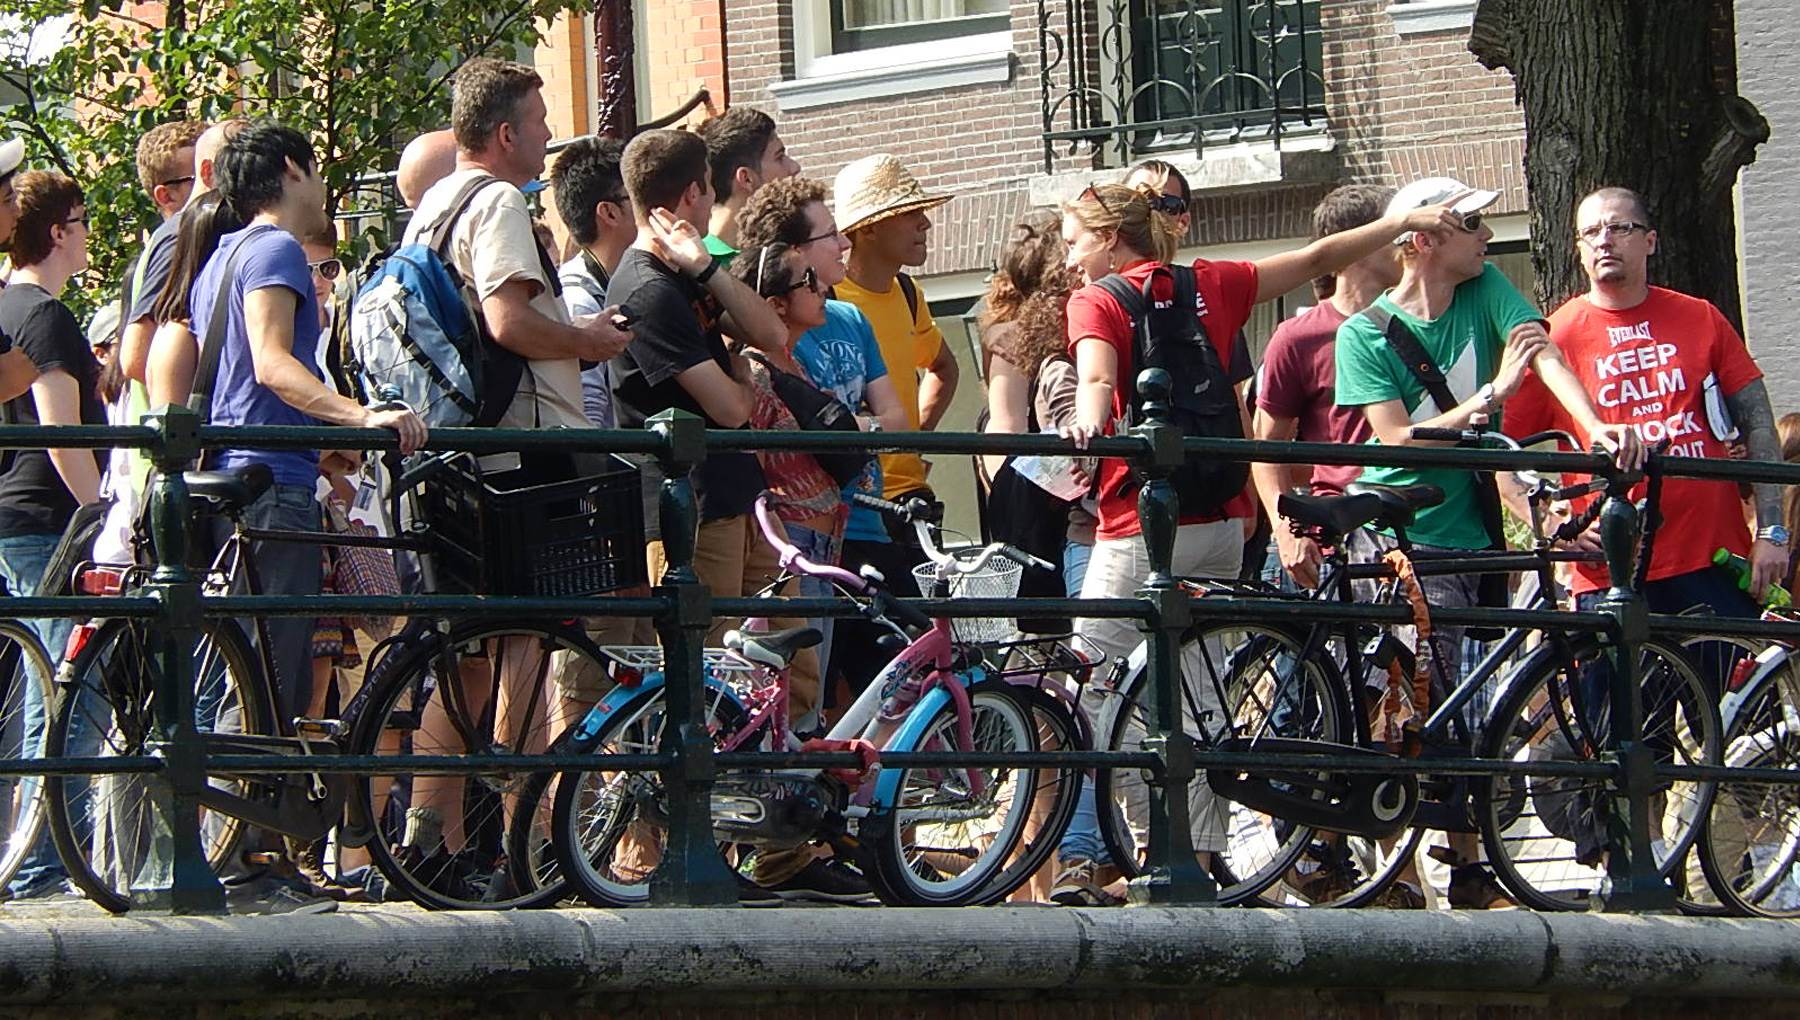 Amsterdam tourists CC BY-SA 2.0 Michael Coghlan via Flickr